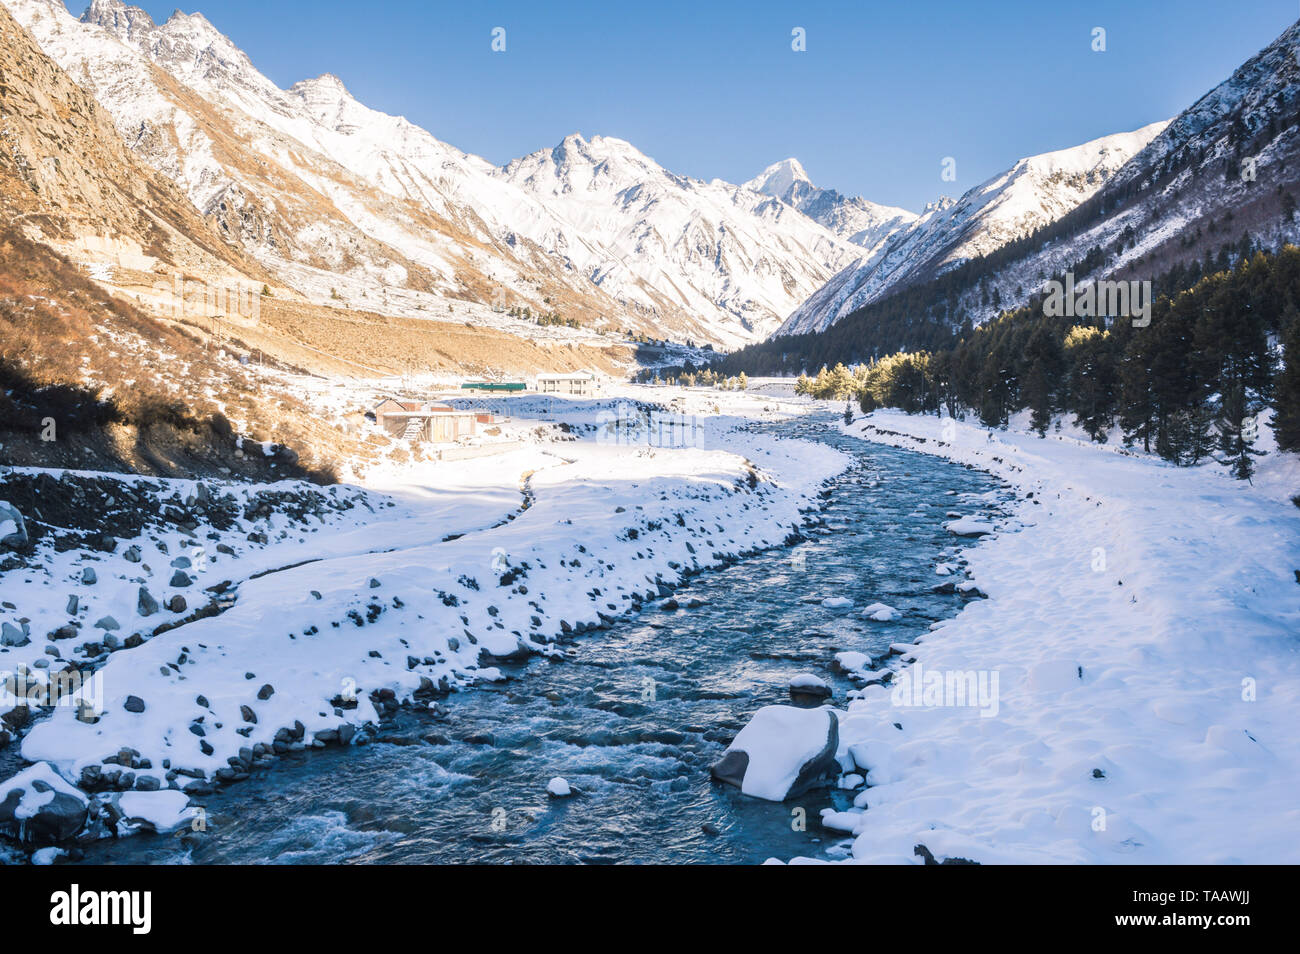 The cold and calm Baspa River flowing towards the Sangla valley through the snow-clad mountains and Chitkul, Himachal Pradesh. Stock Photo